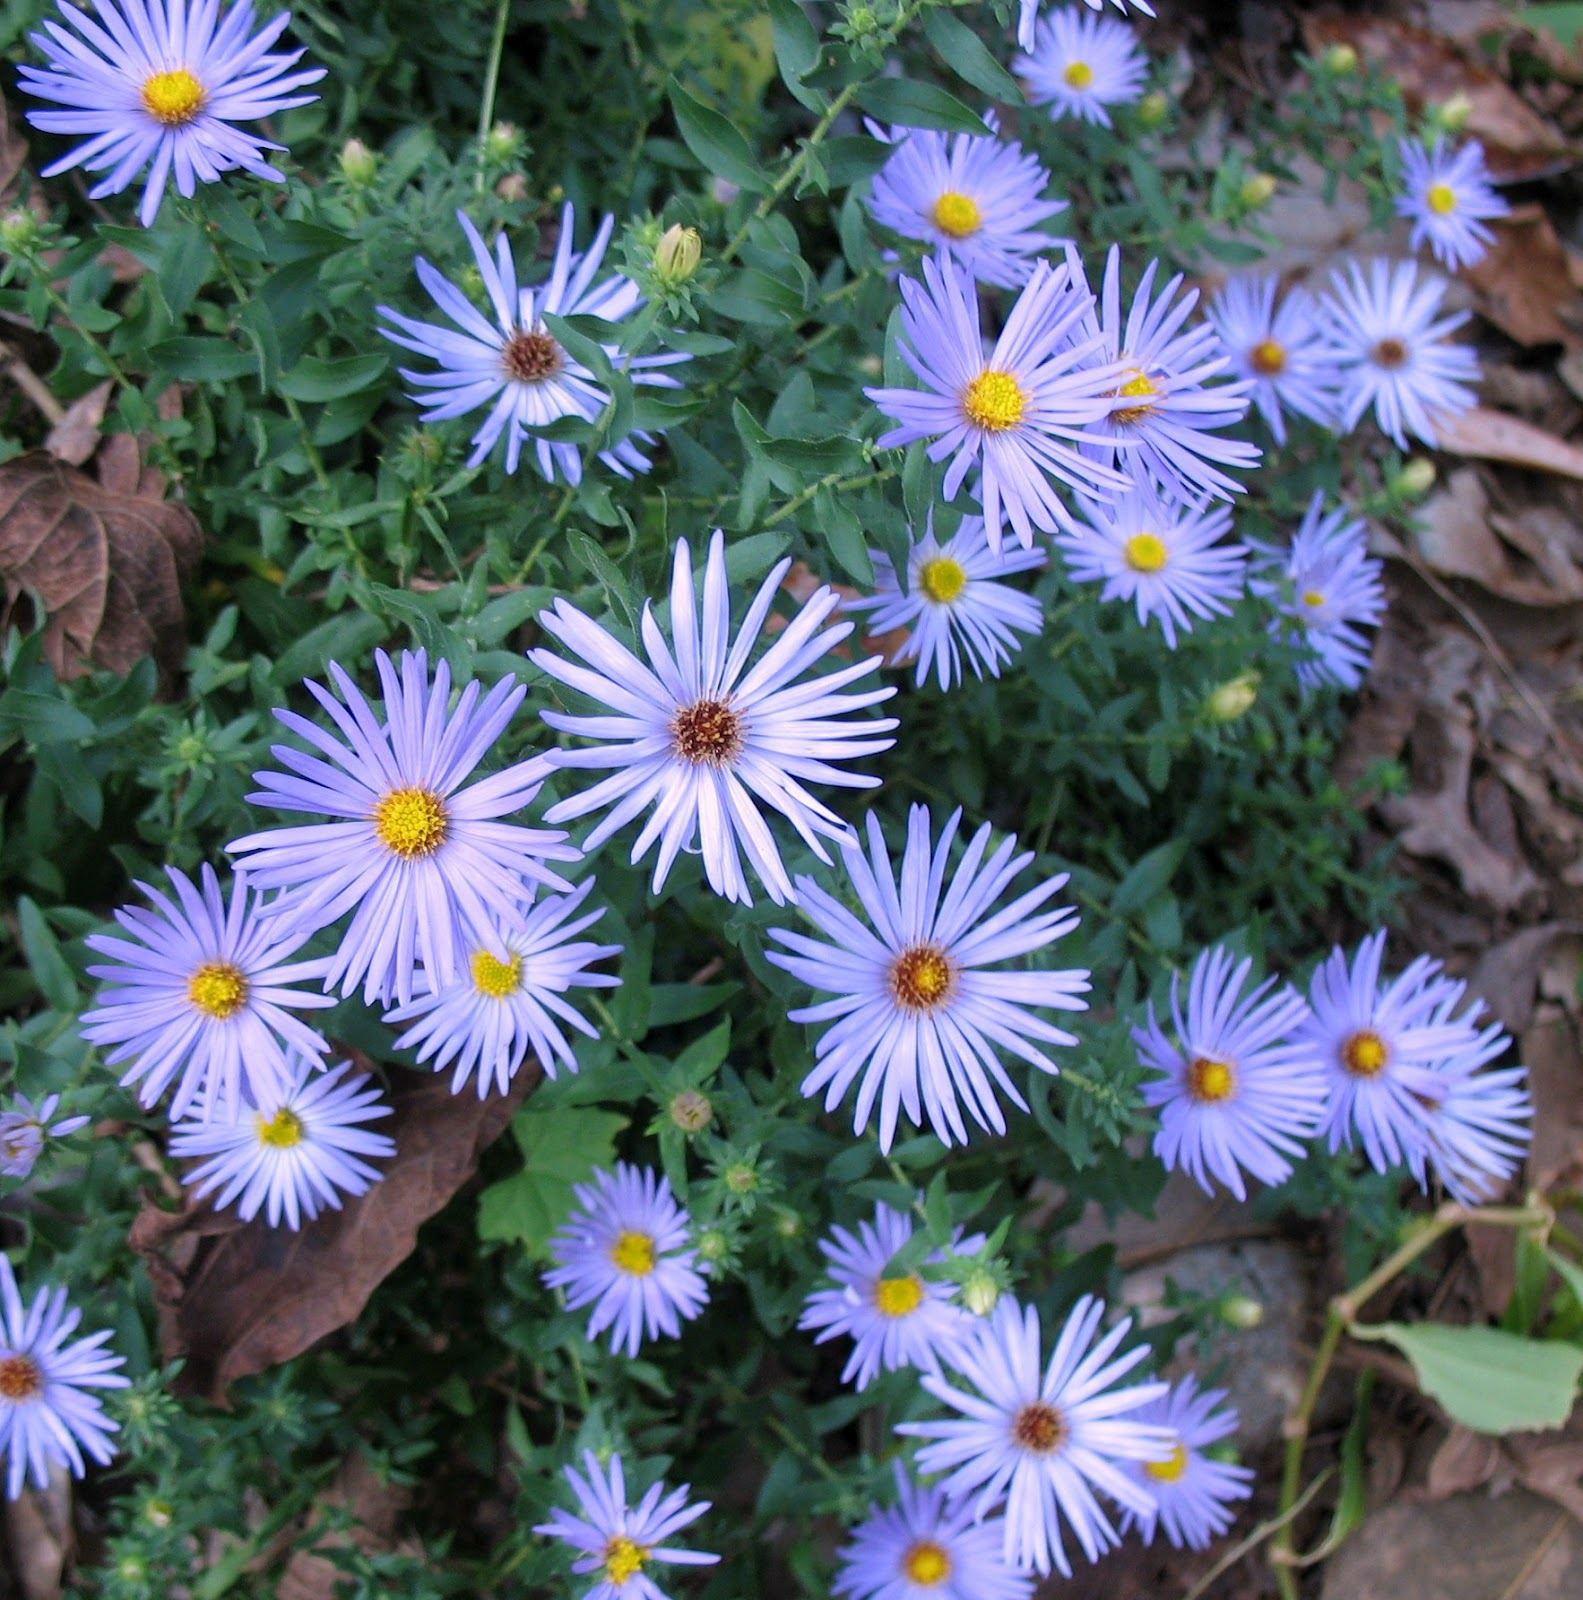 Using georgia native plants asters asters asters - Aster pianta ...